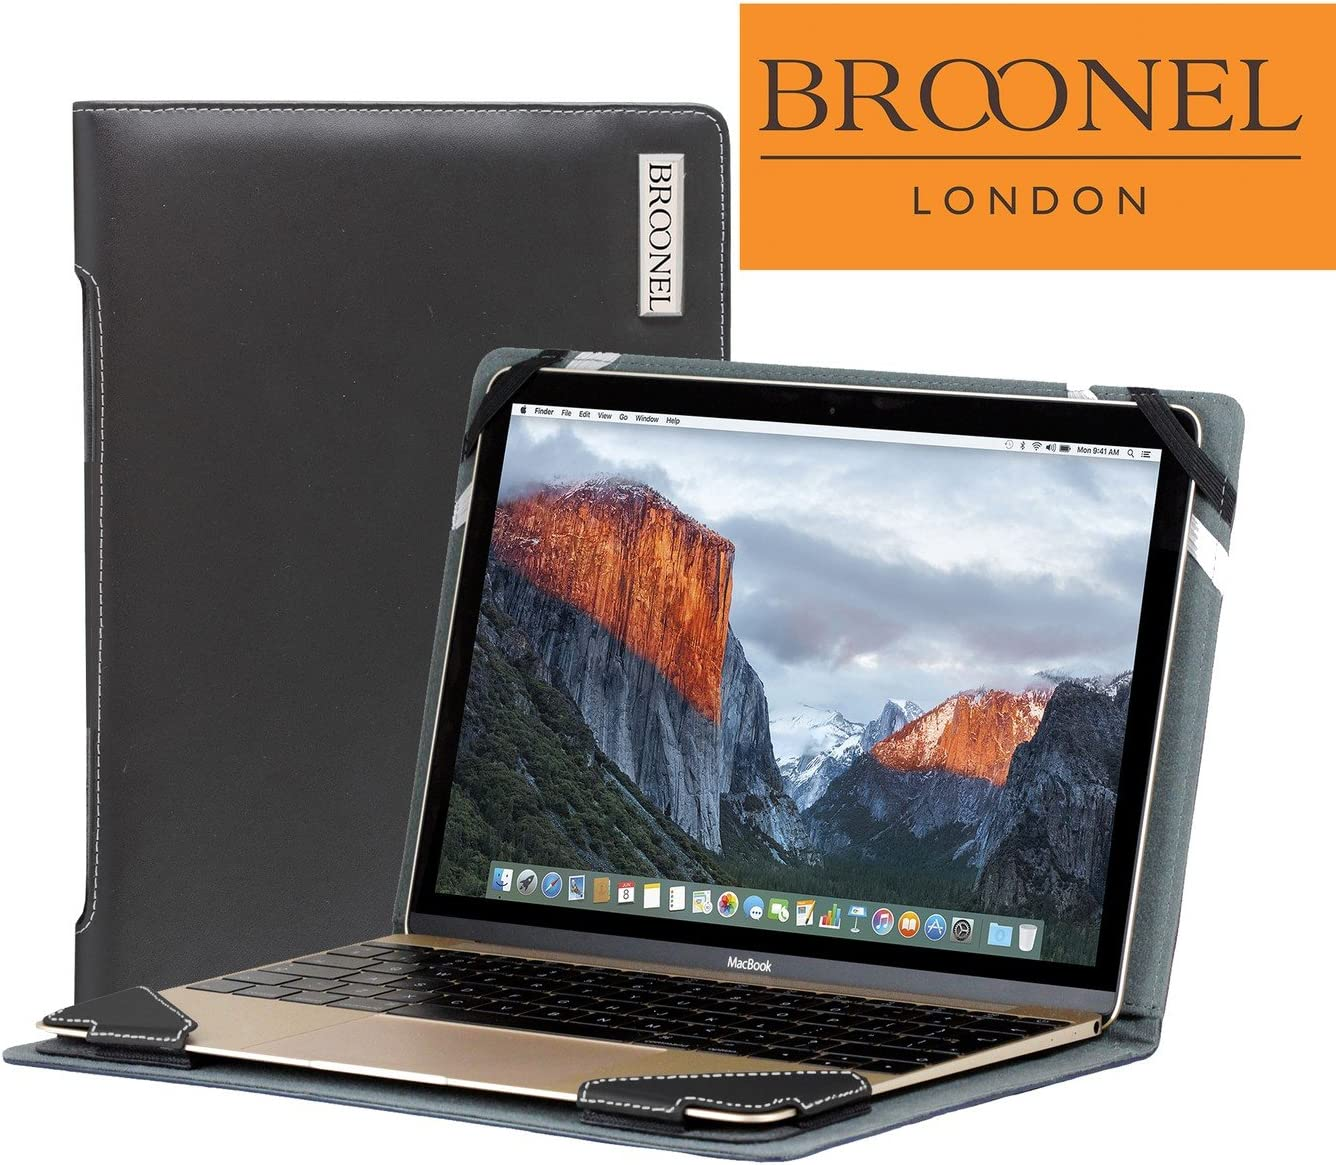 Broonel London - Profile Series - Black Leather Luxury Laptop Case For the Acer Aspire Switch 11 V